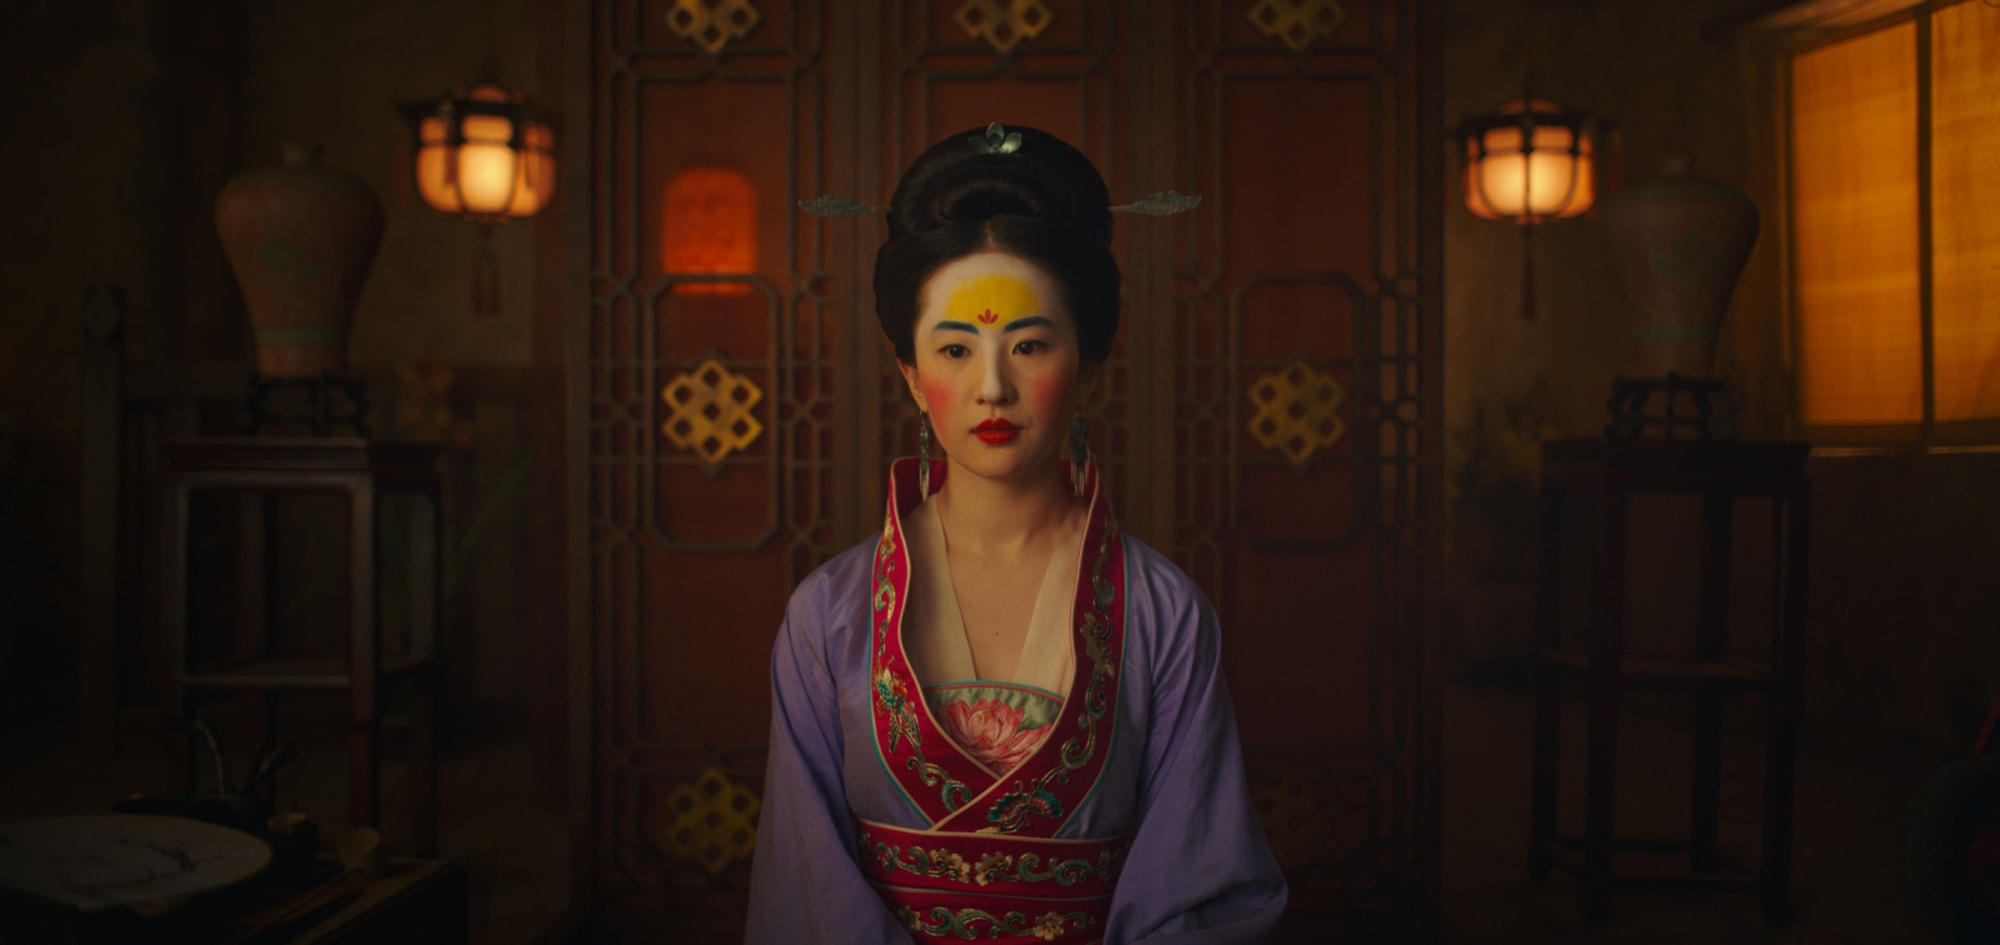 historical movie costumes, Mulan's costume was very bright. It was also inspired by a different era as the one the original story was set in.